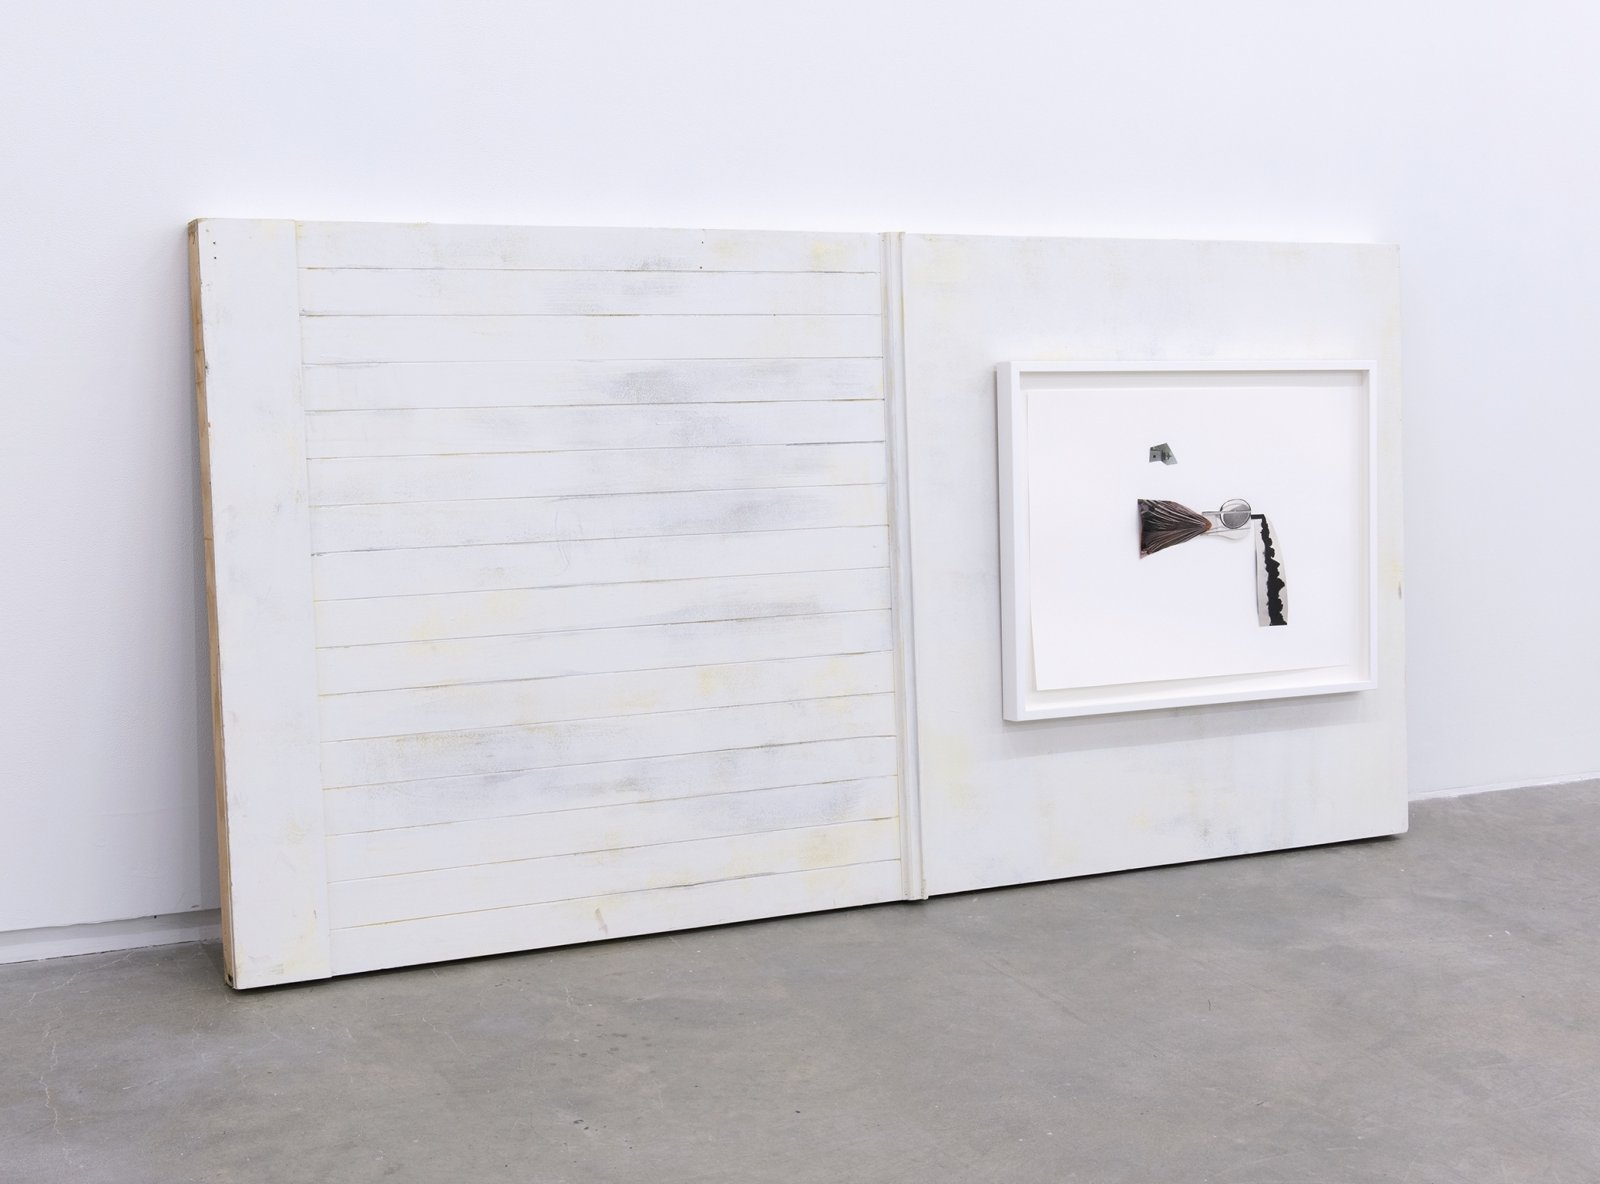 Geoffrey Farmer, Mother and Child, 2014, framed cut-outs mounted on paper, wooden wall façade, paint, frame: 26 x 34 in. (87 x 67 cm), wall façade: 48 x 96 x 11 in. (122 x 244 x 28 cm)